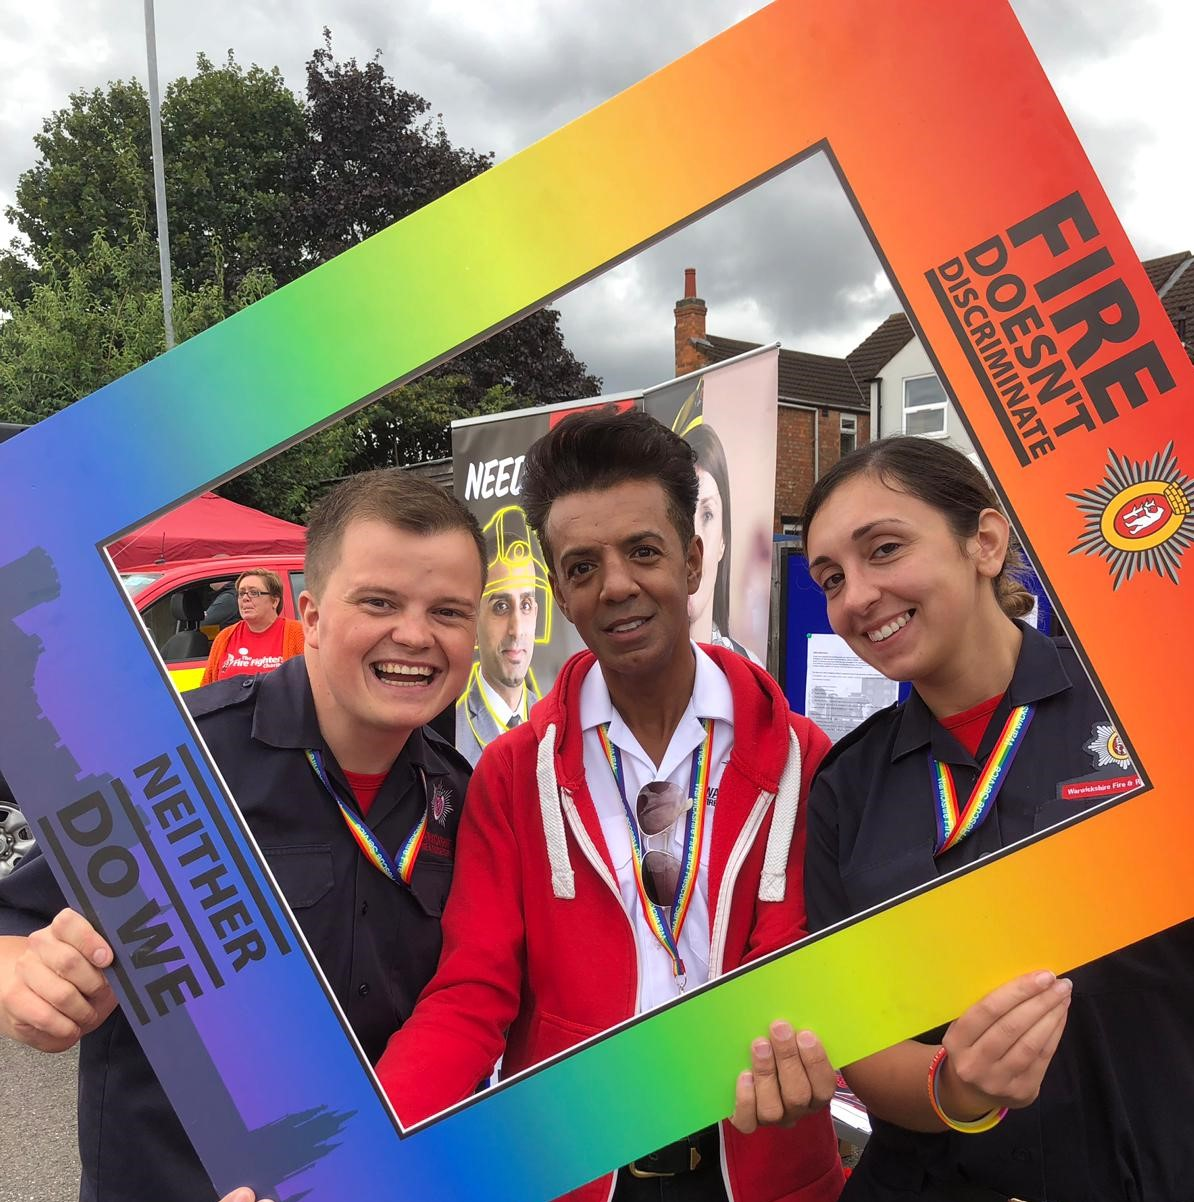 A picture of Imran Dean with colleagues at Warwickshire Pride 2019